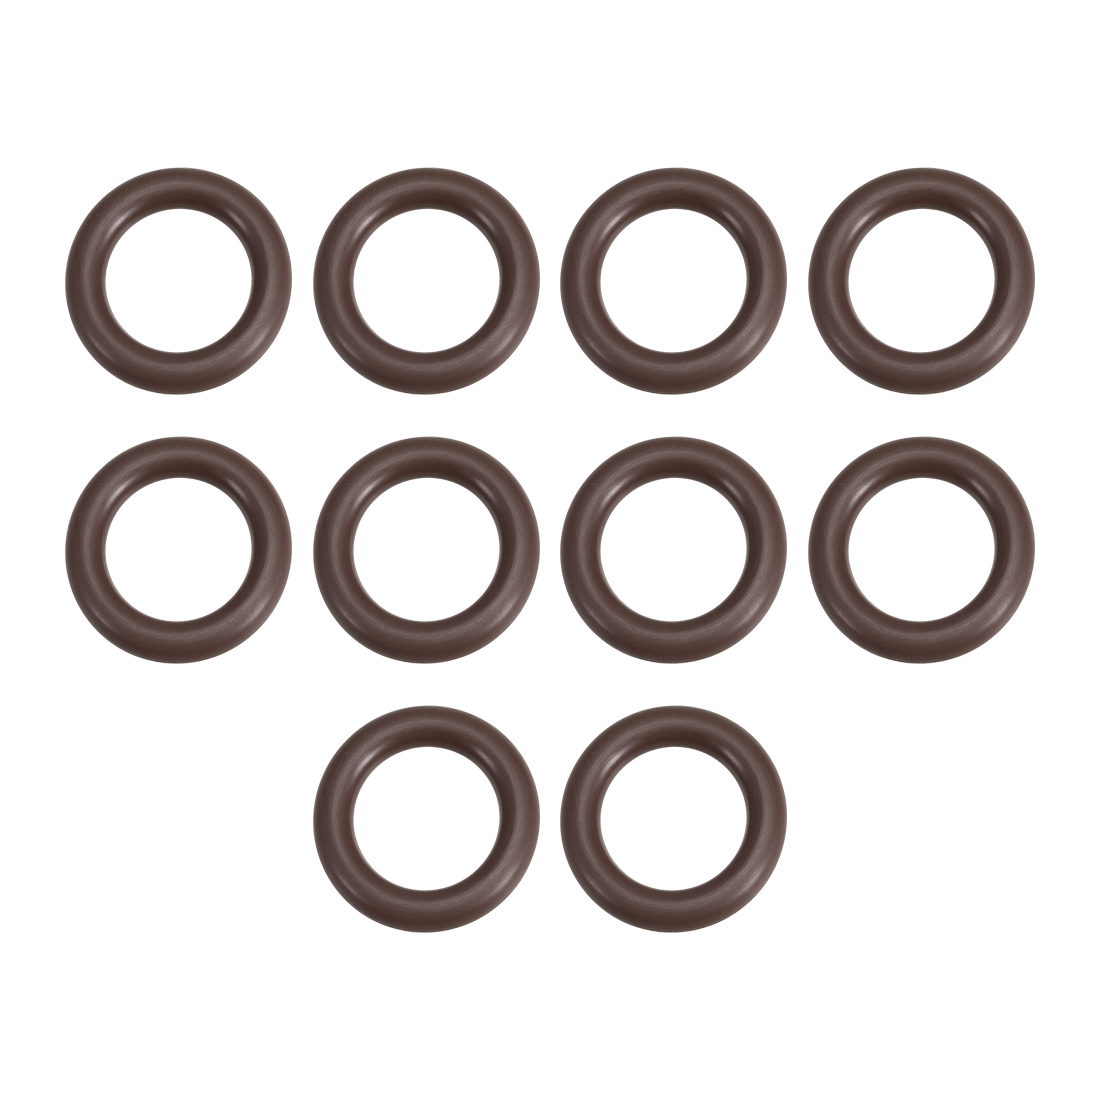 10 Pcs Fluororubber Gasket Sanitary Clamp Washer 29mm x 18.4mm O-Ring